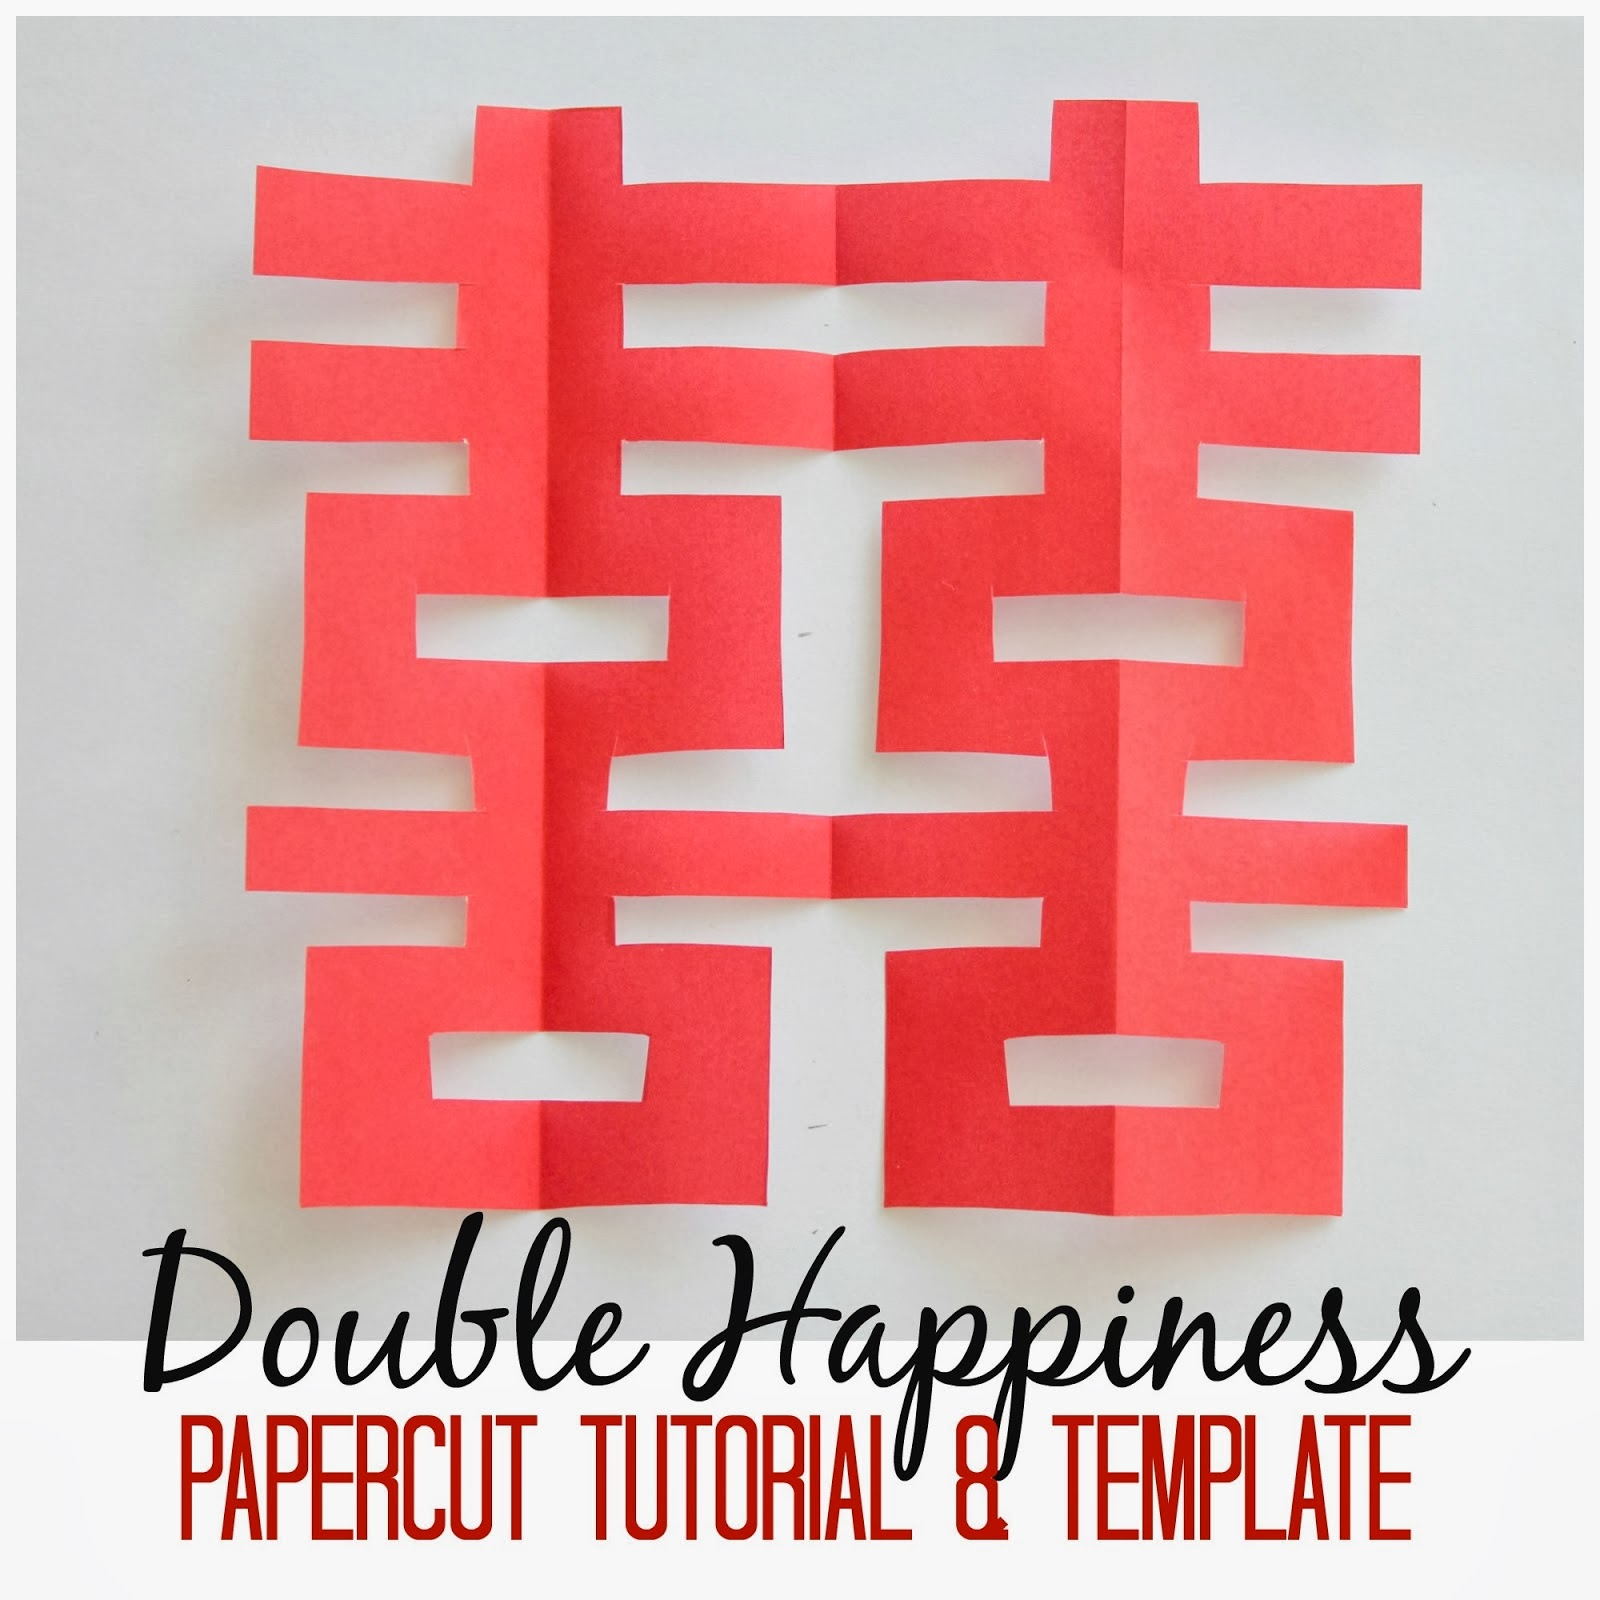 chinese paper cutting templates dragon - relentlessly fun deceptively educational after school